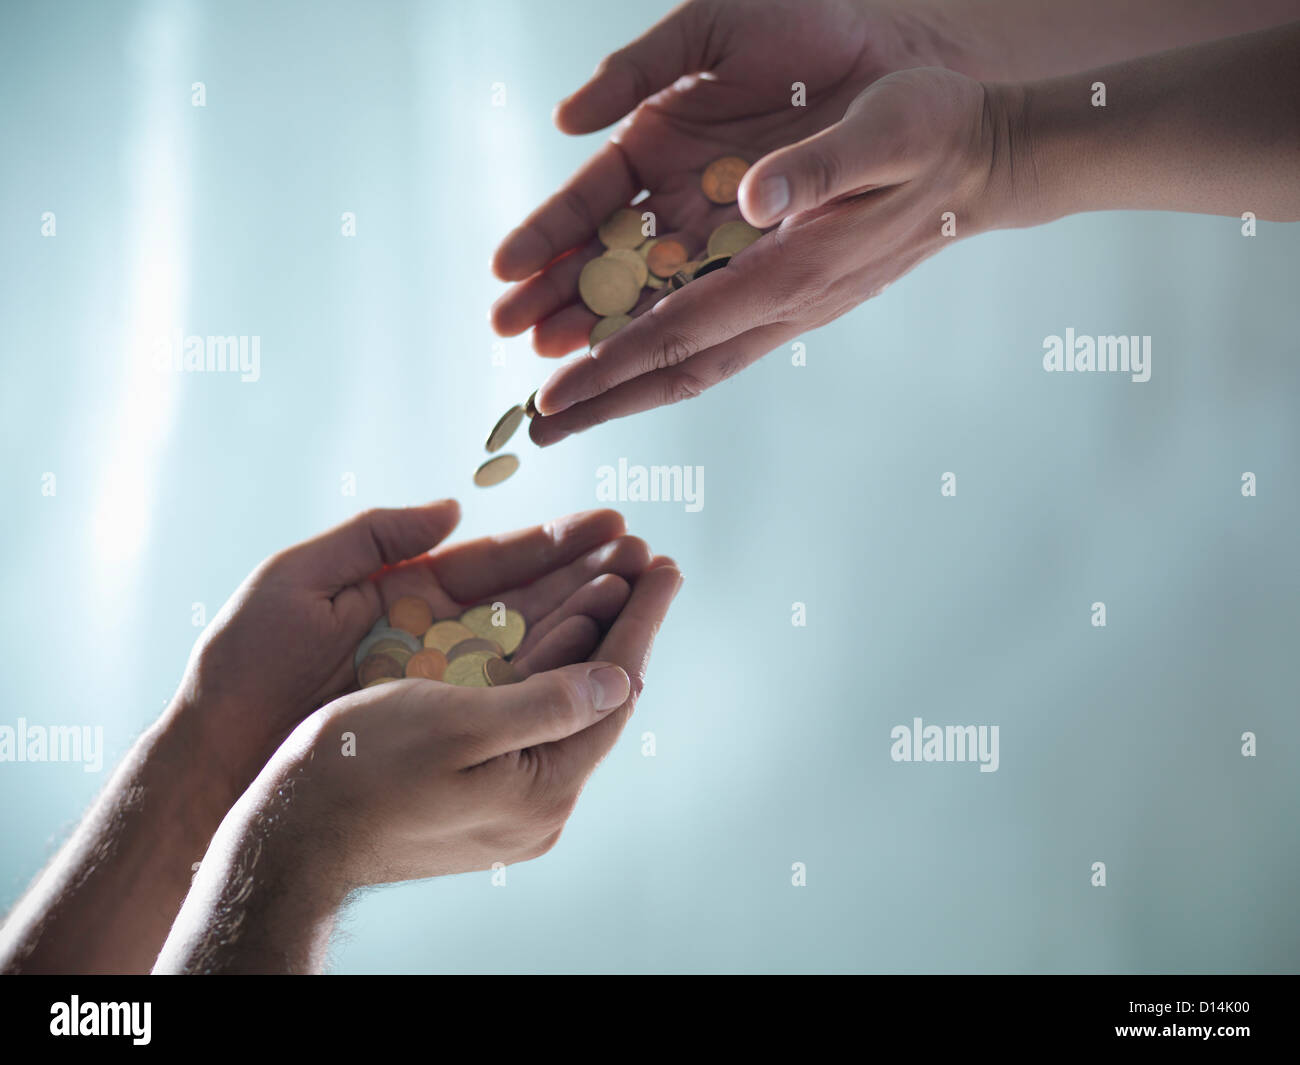 Hands passing pile of coins - Stock Image